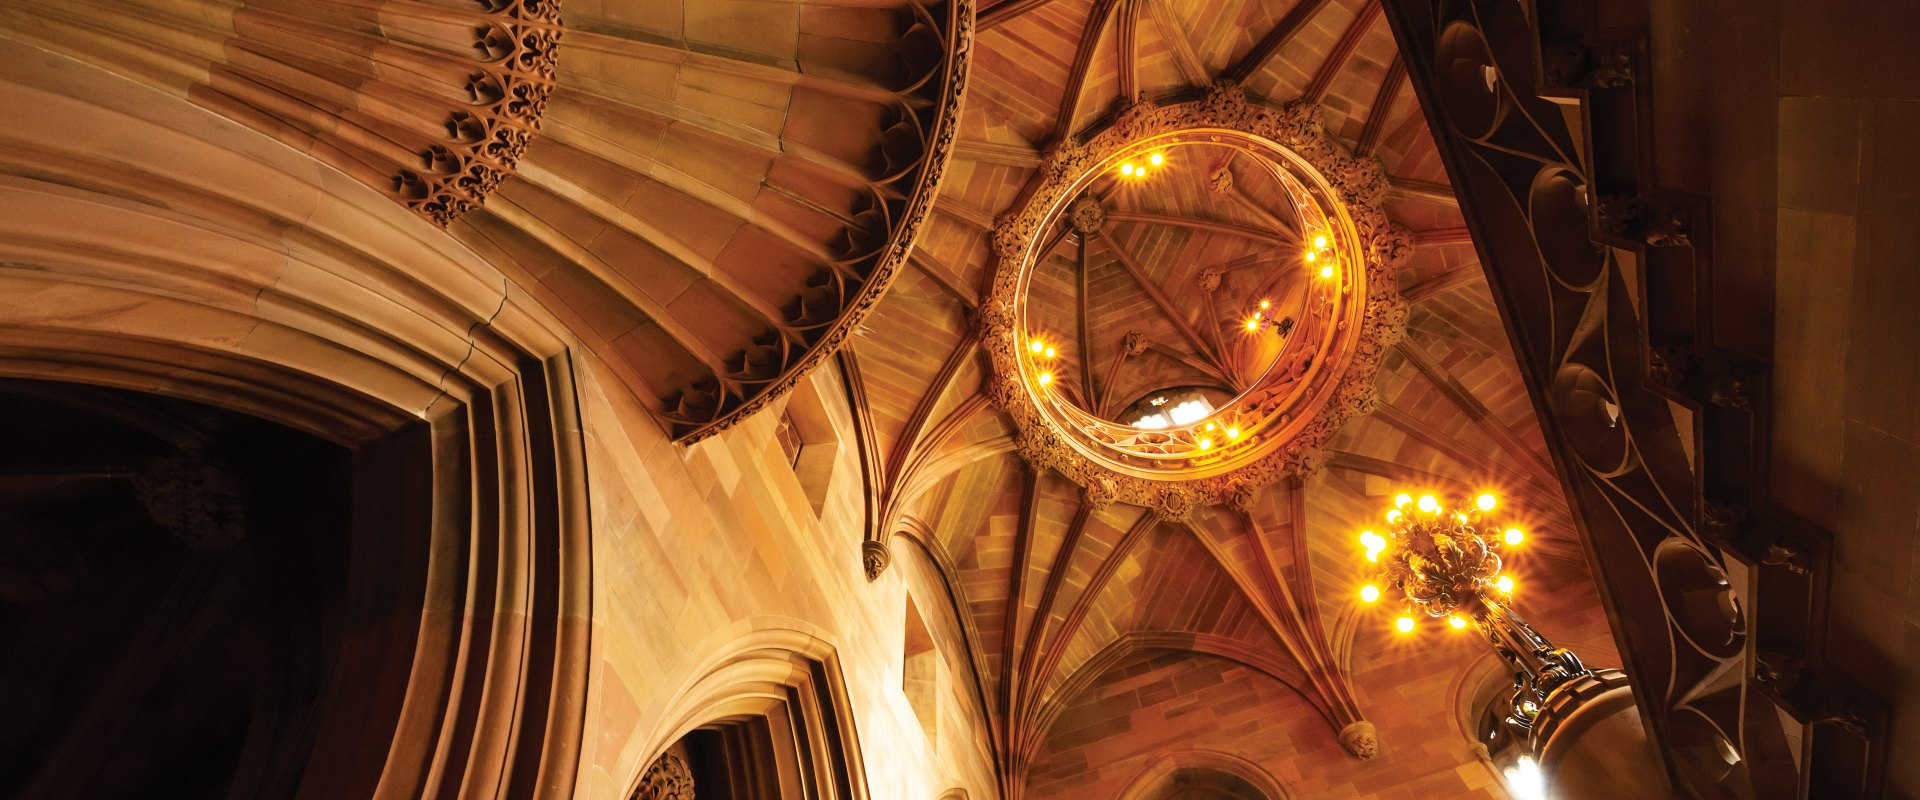 Vaulted ceiling of The John Rylands Library